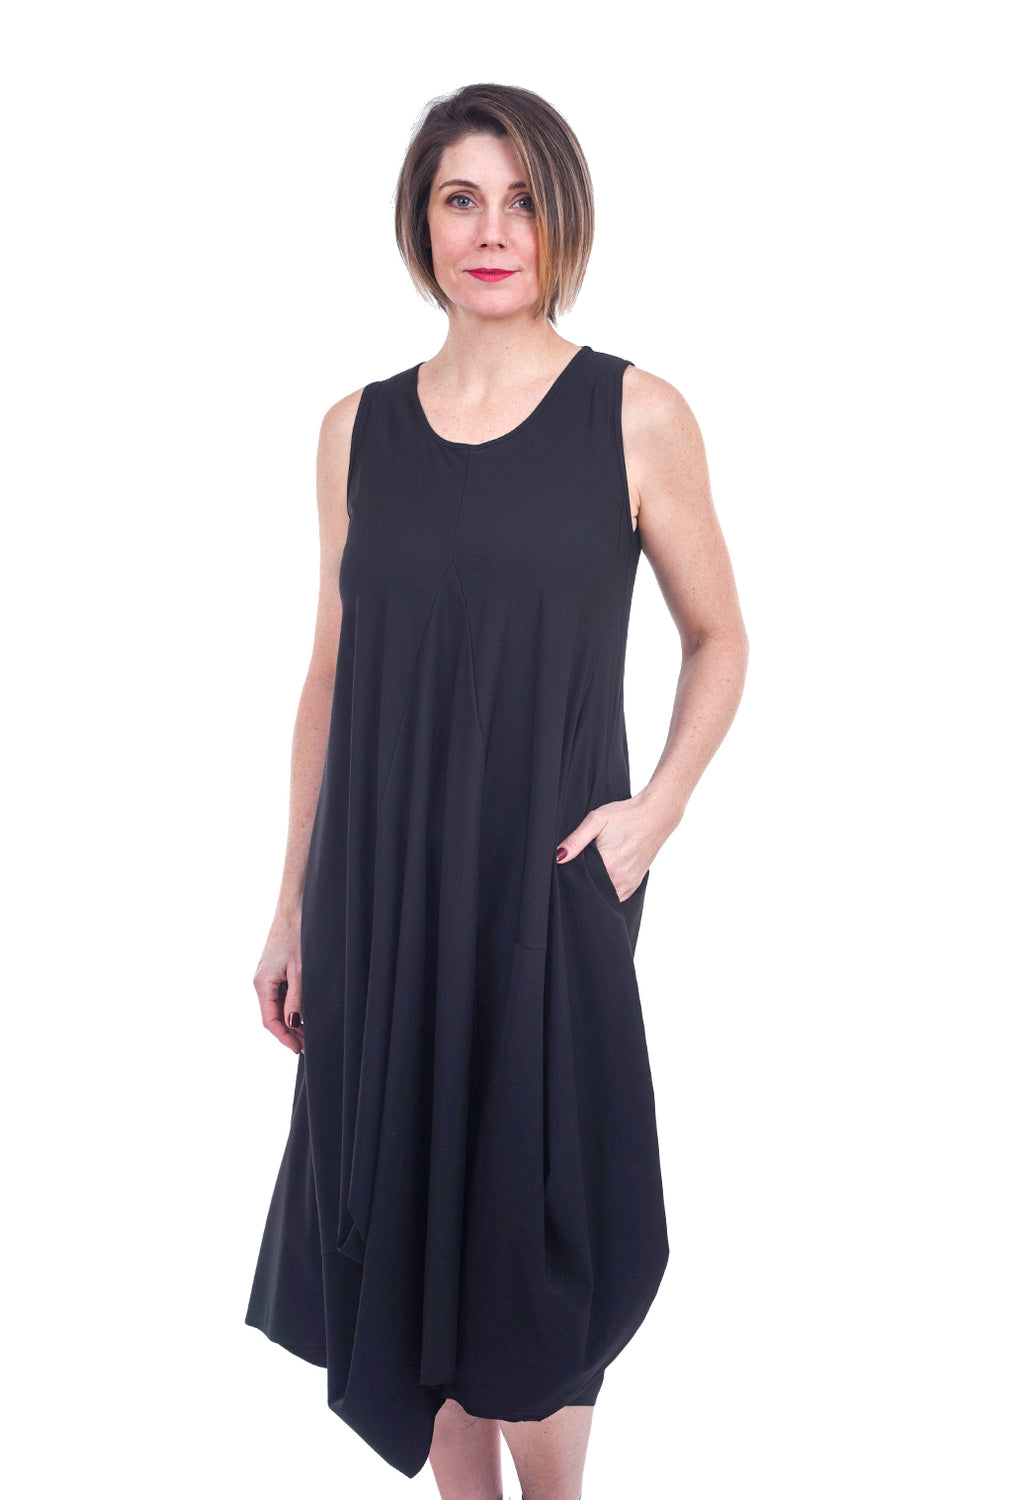 Jason by Comfy USA Eddie Dress, Black